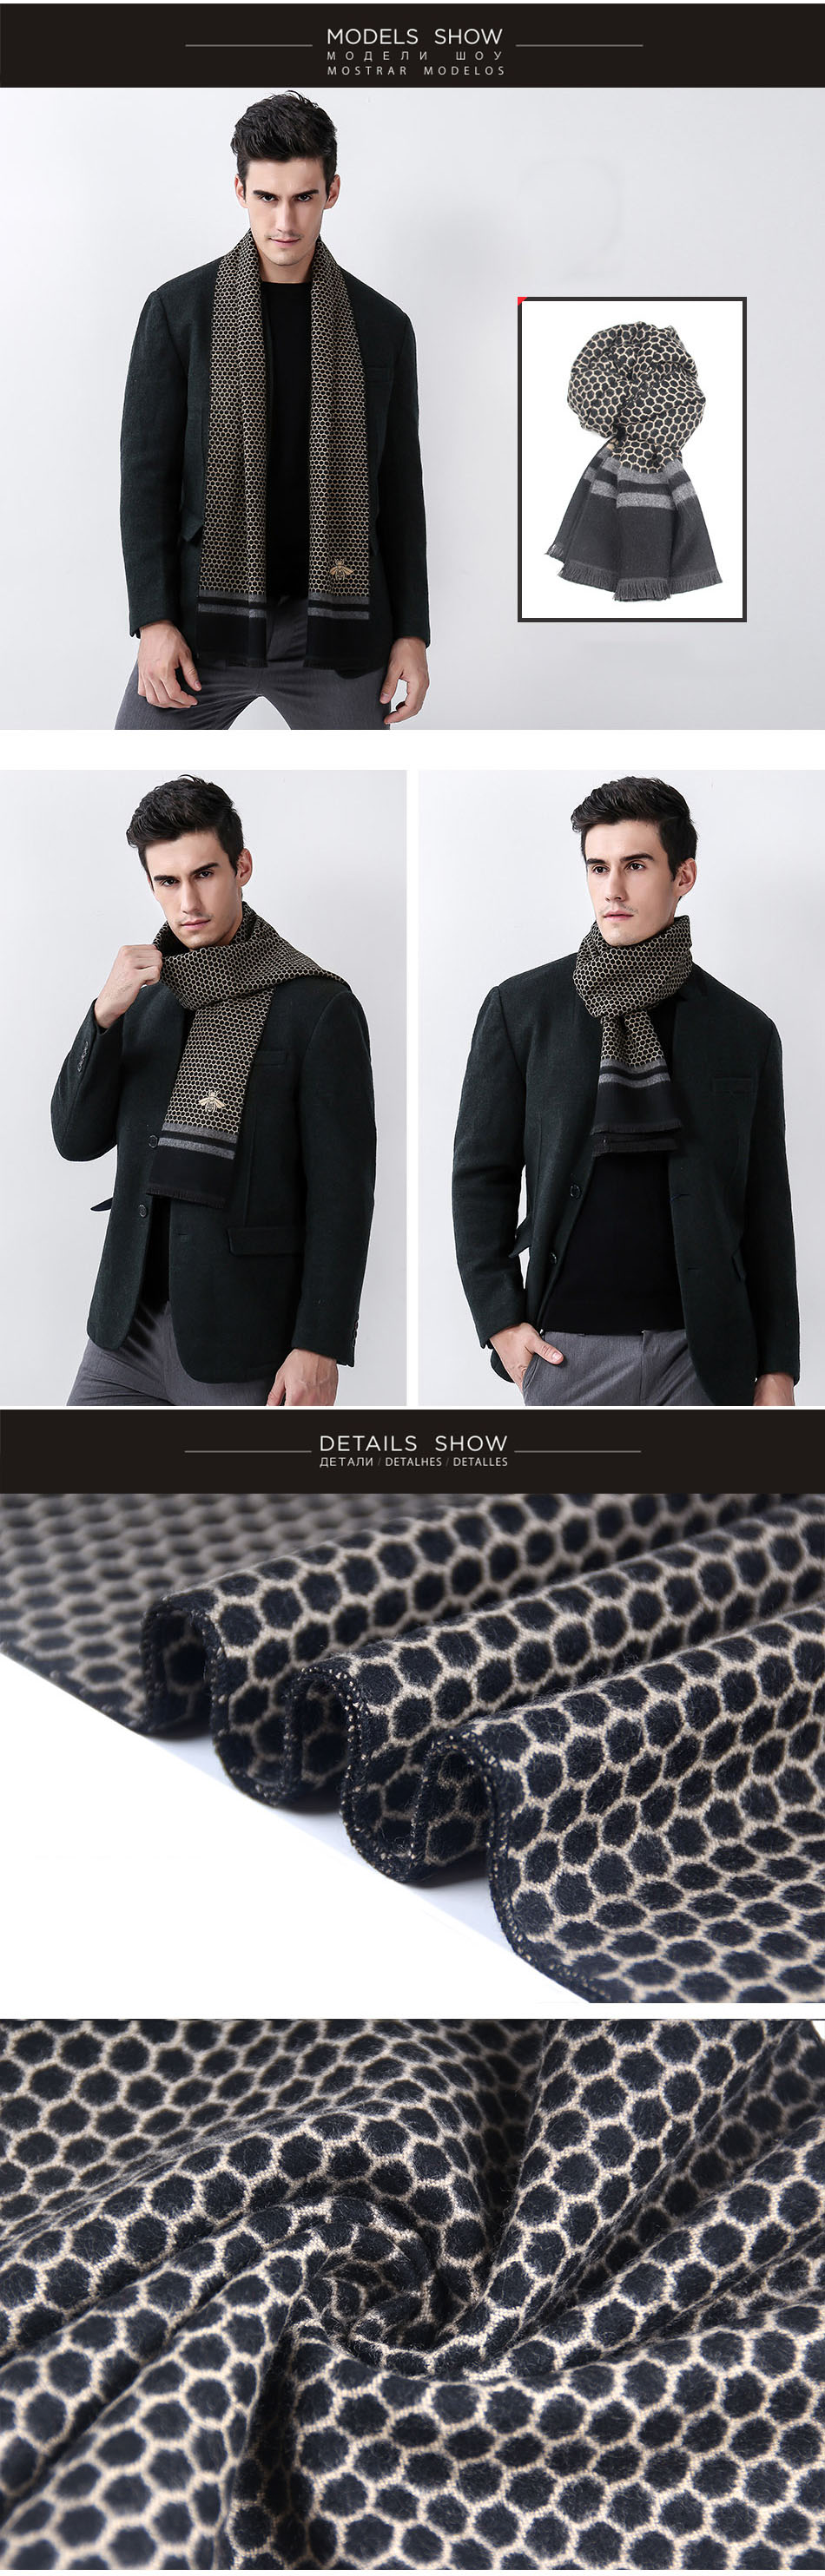 Фото Шарф Scarves  Men Scarf Winter Warm Small Square Silk Poncho Fall 2017 Fashion Casual Wool Clothing Accessories Apparel Luxury Brand